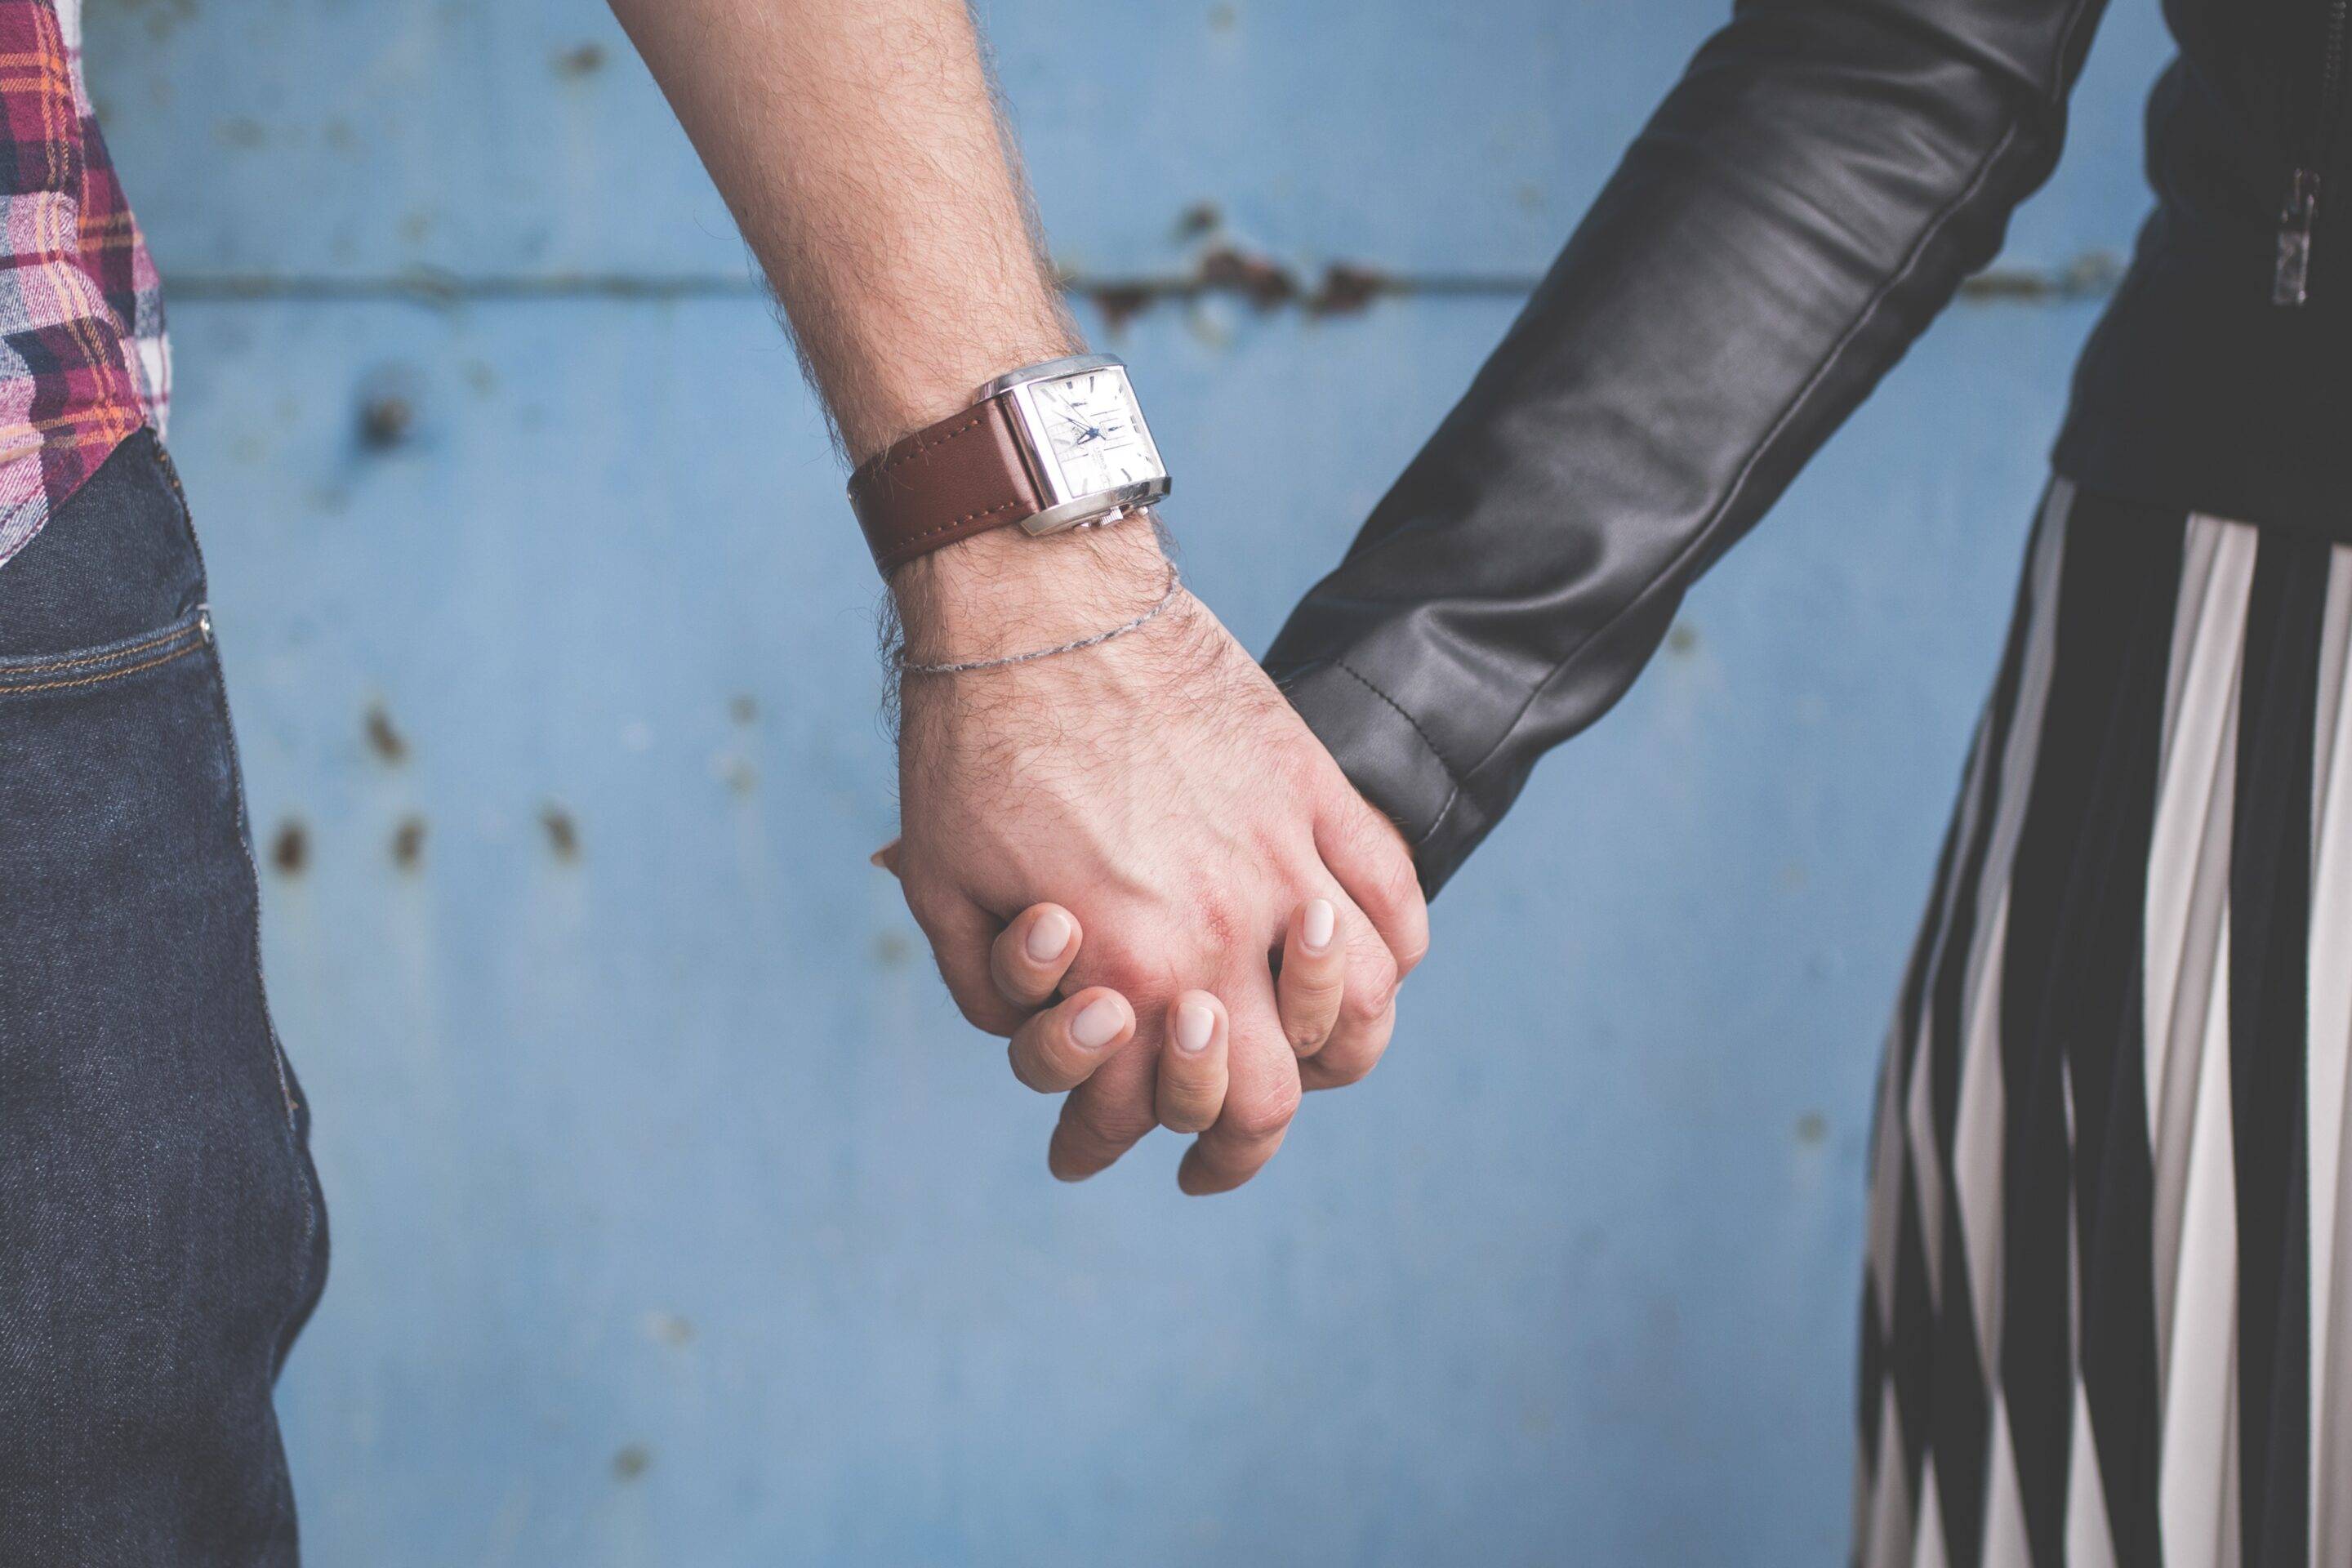 10 Easy Ways to Date Your Spouse at Home